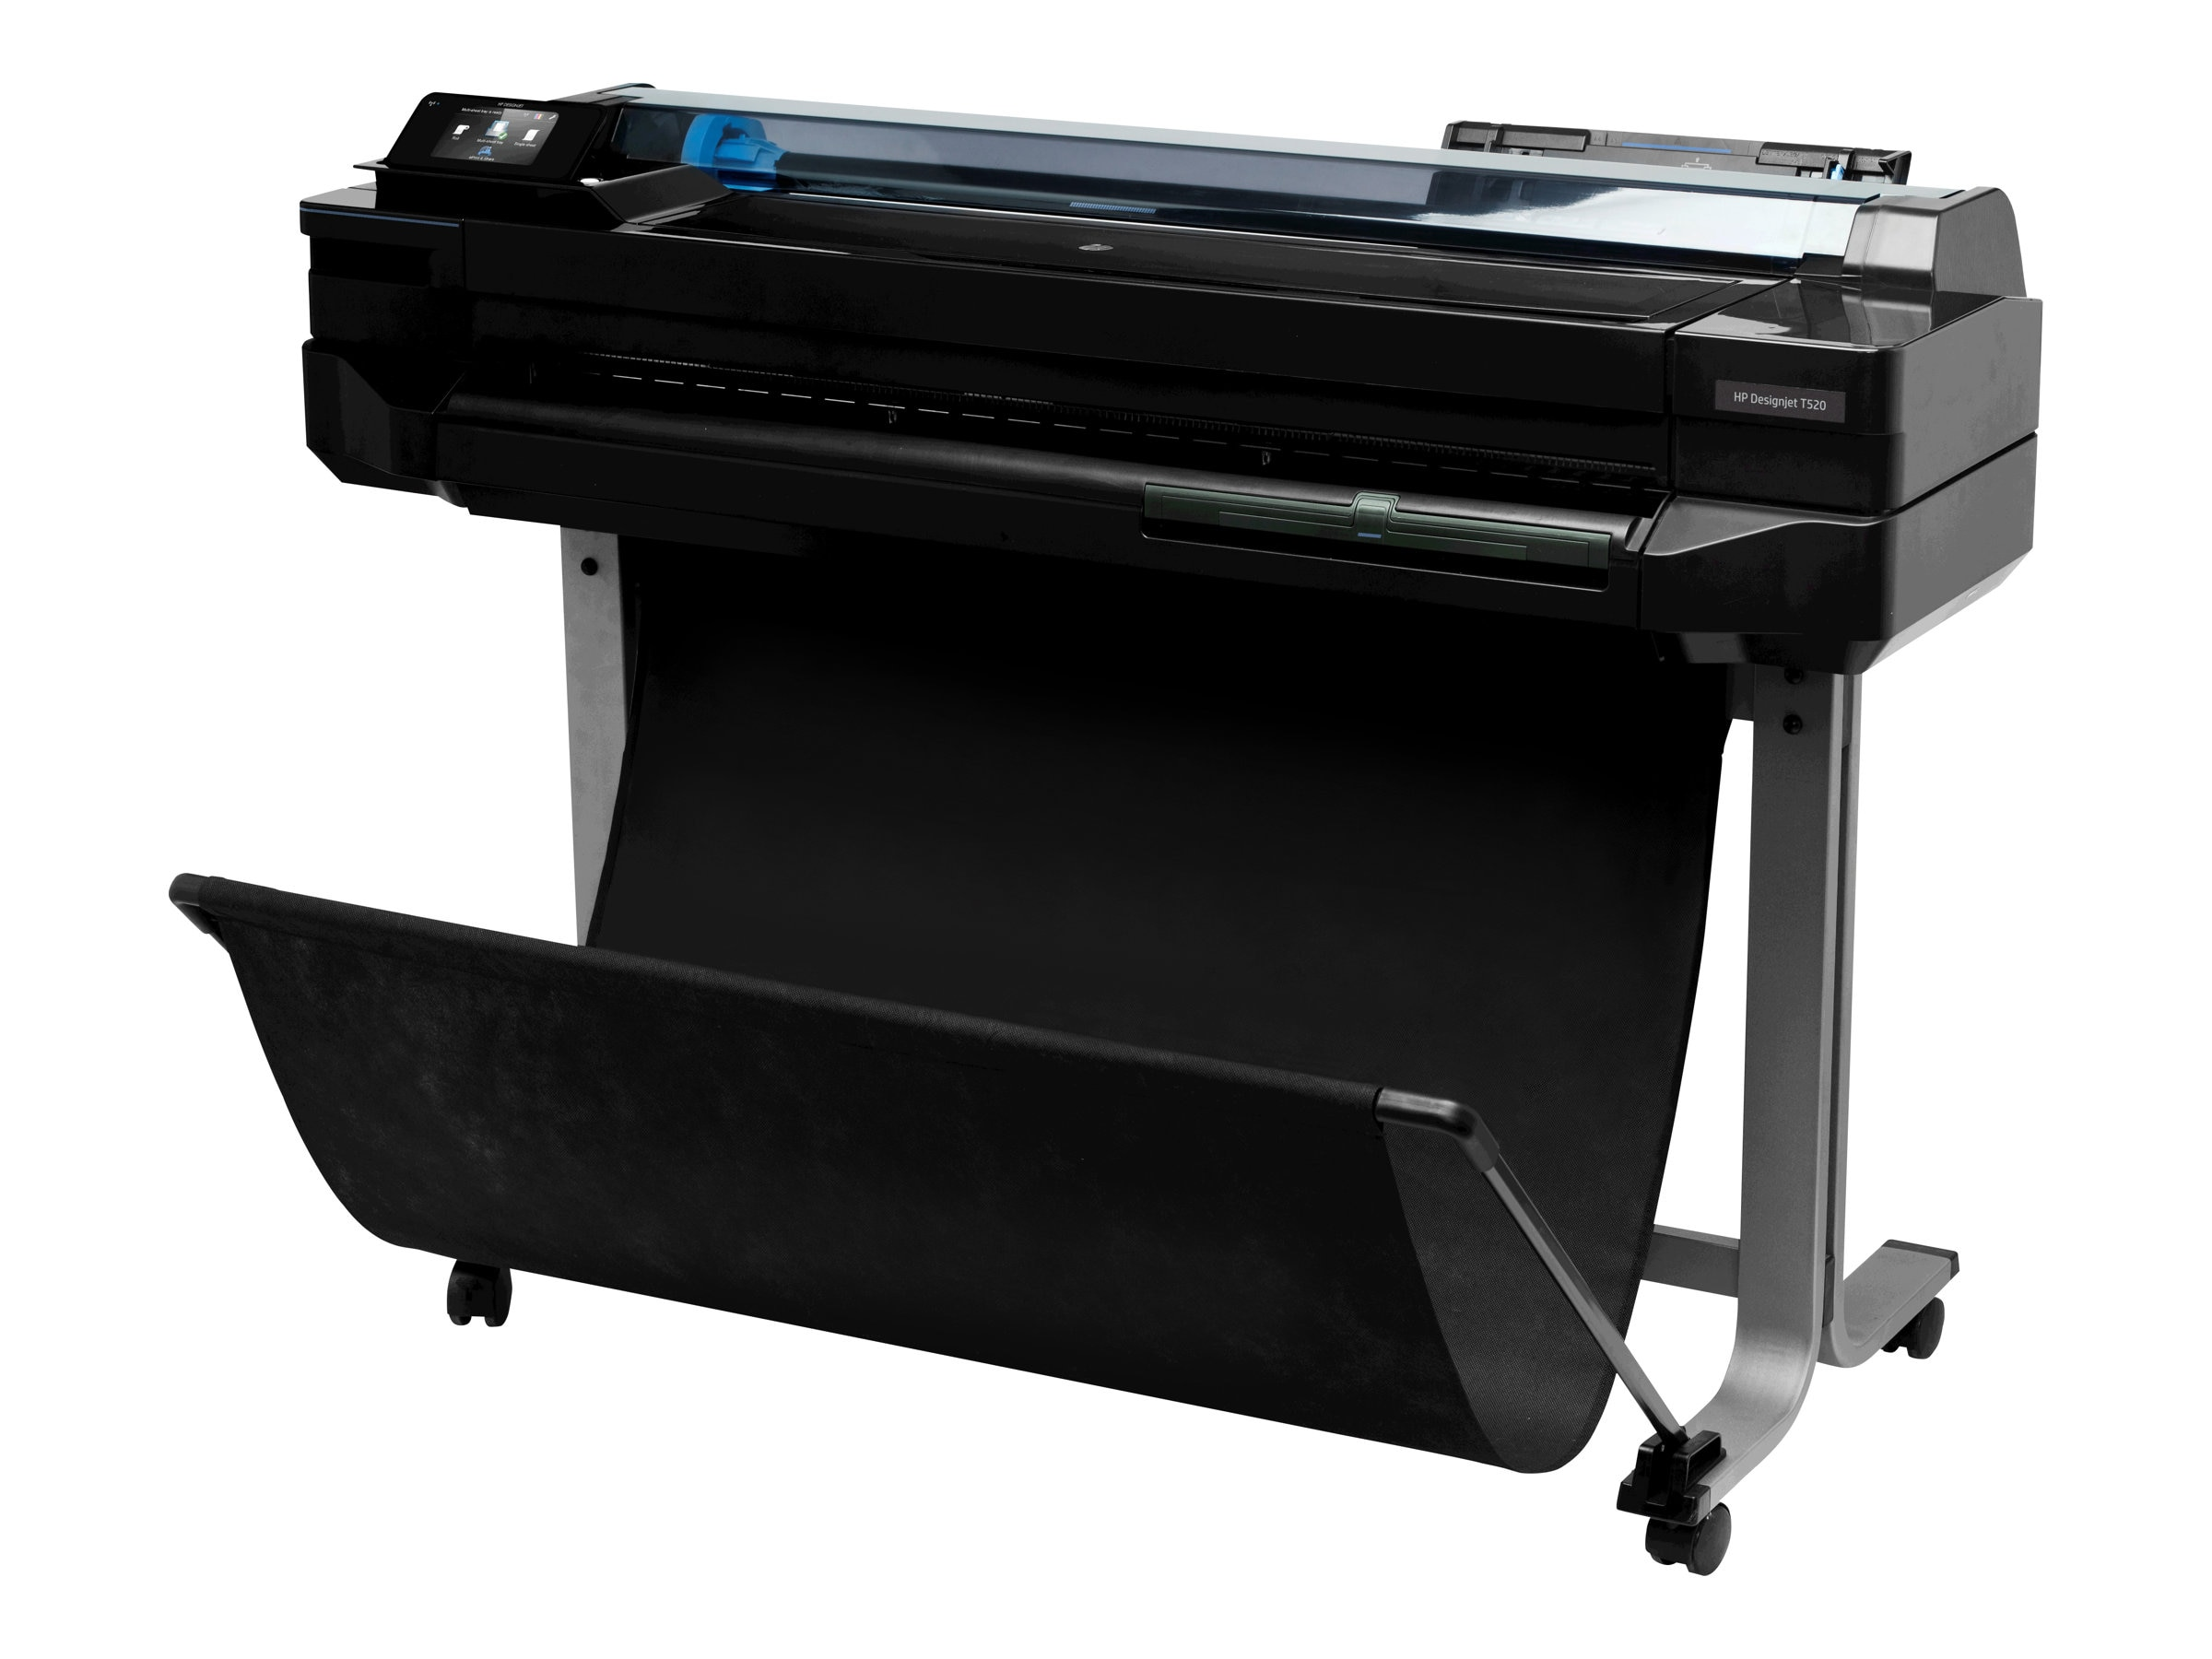 HP Designjet T520 36 ePrinter ($2,495 - $200 Instant Rebate = $2,295 Expires 2 29 2016)